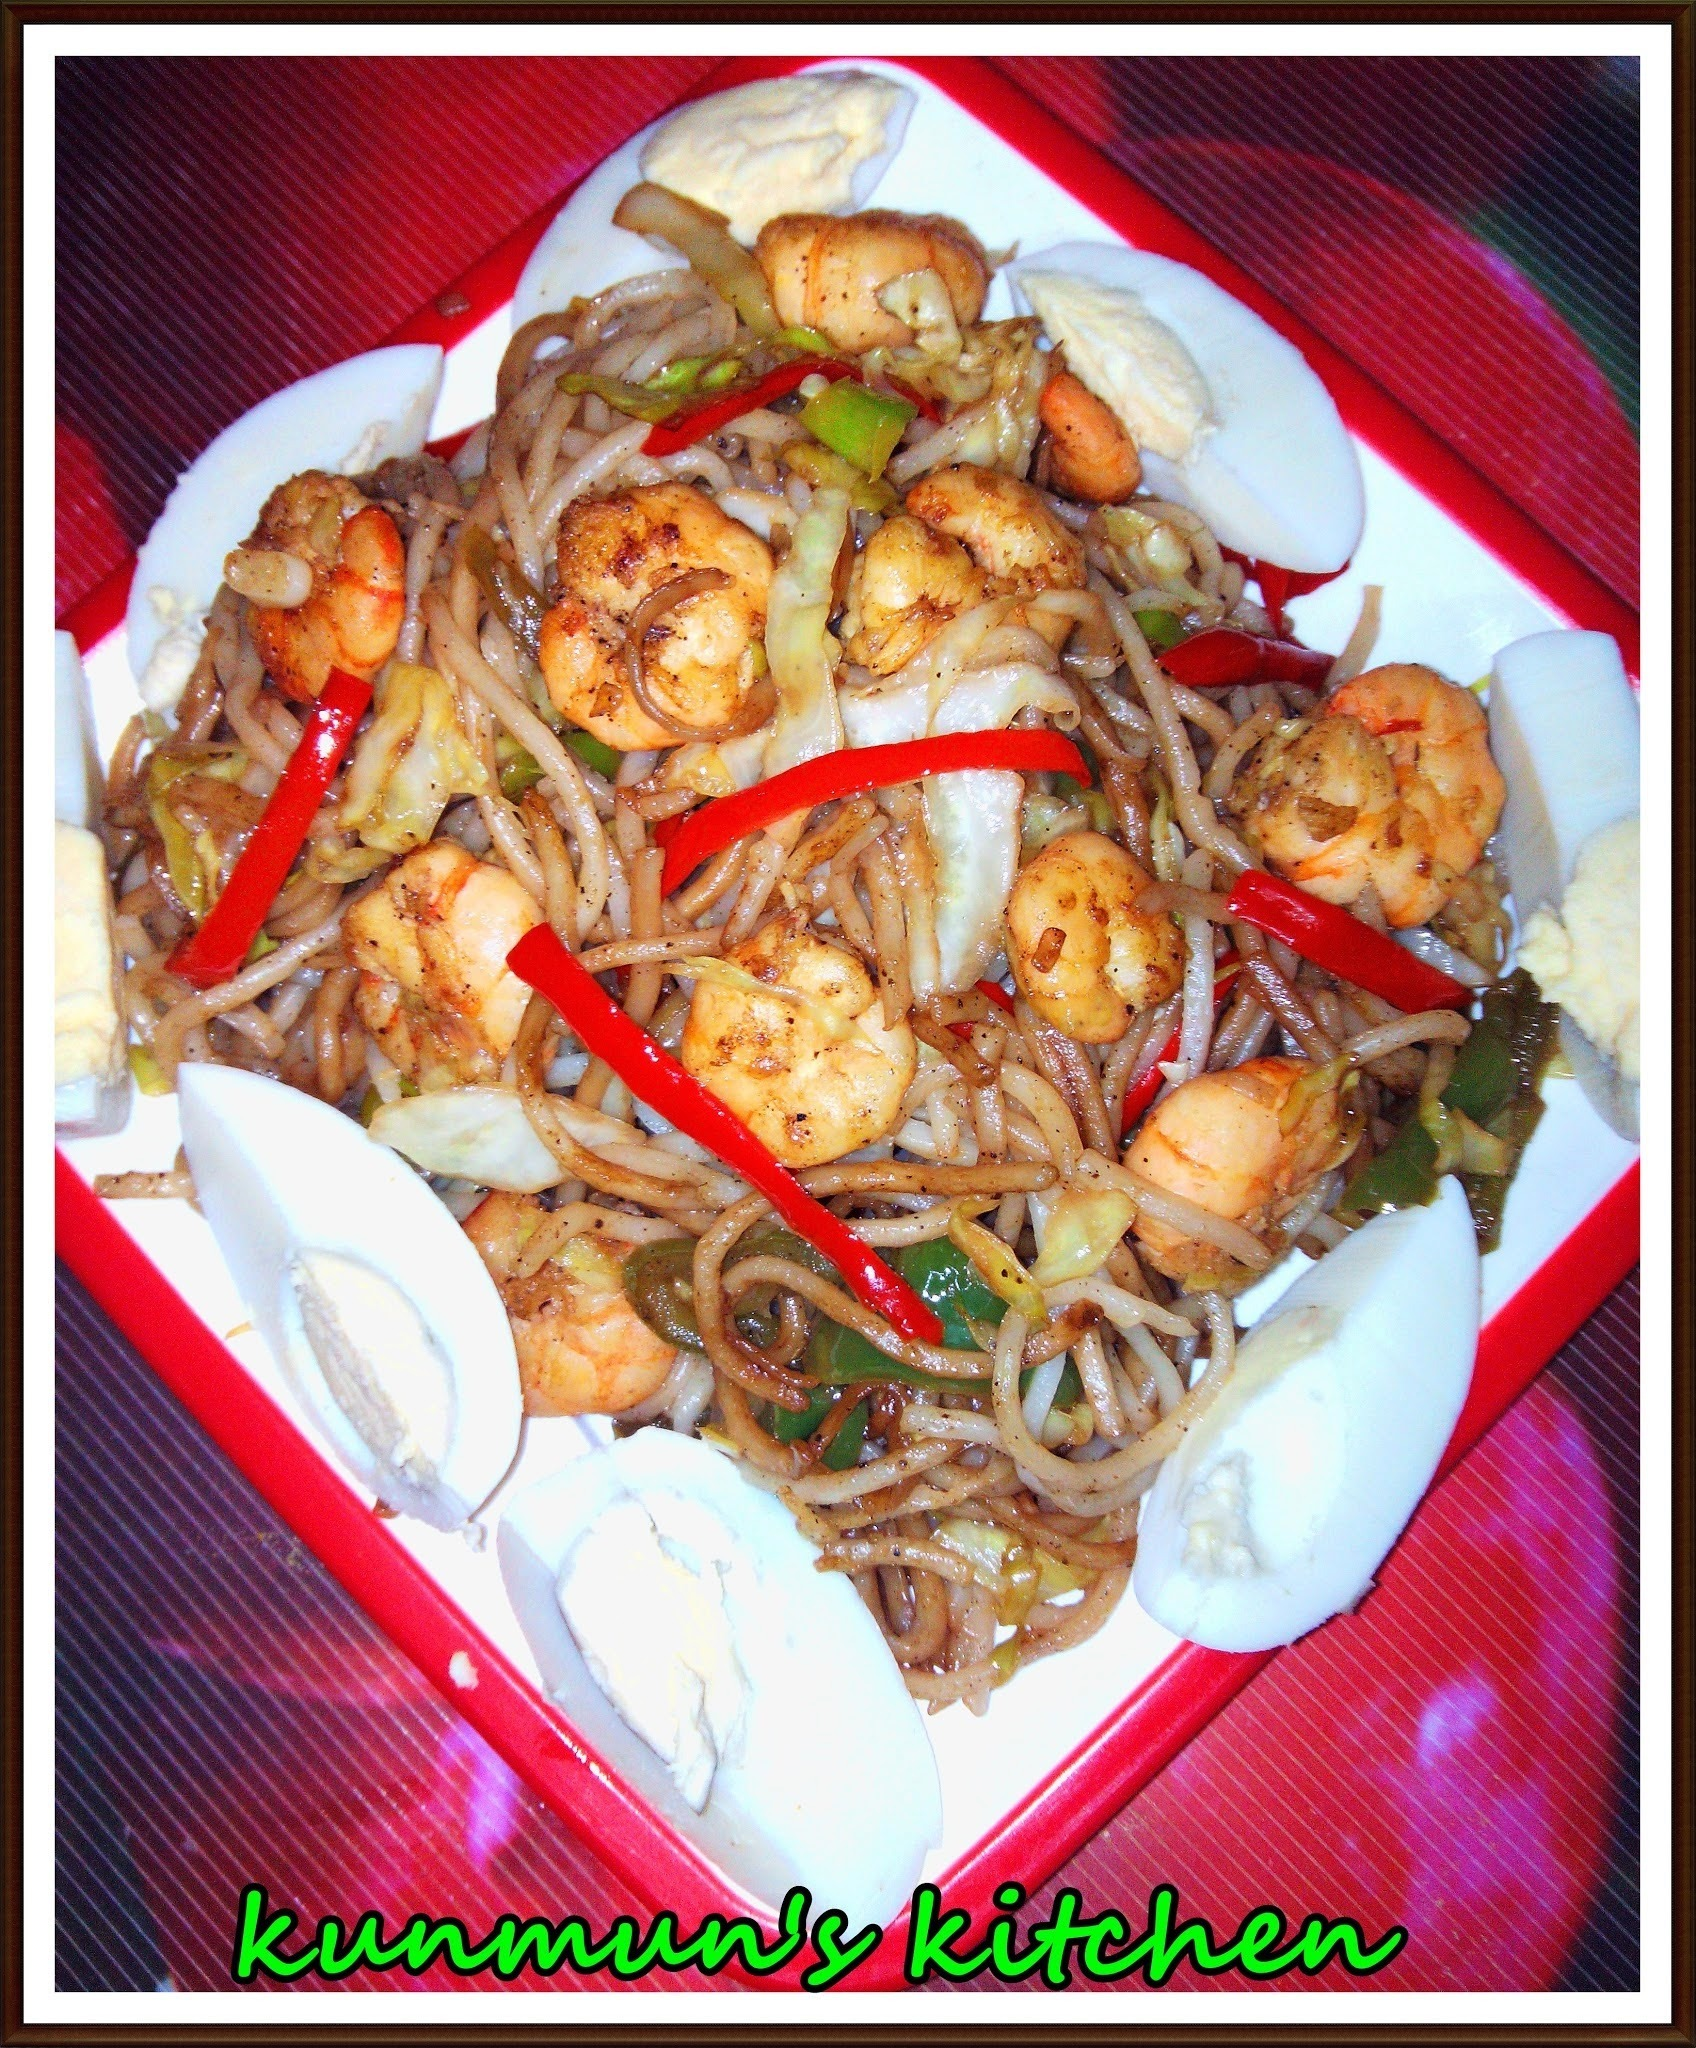 PRAWN GARLIC HAKKA NOODLES